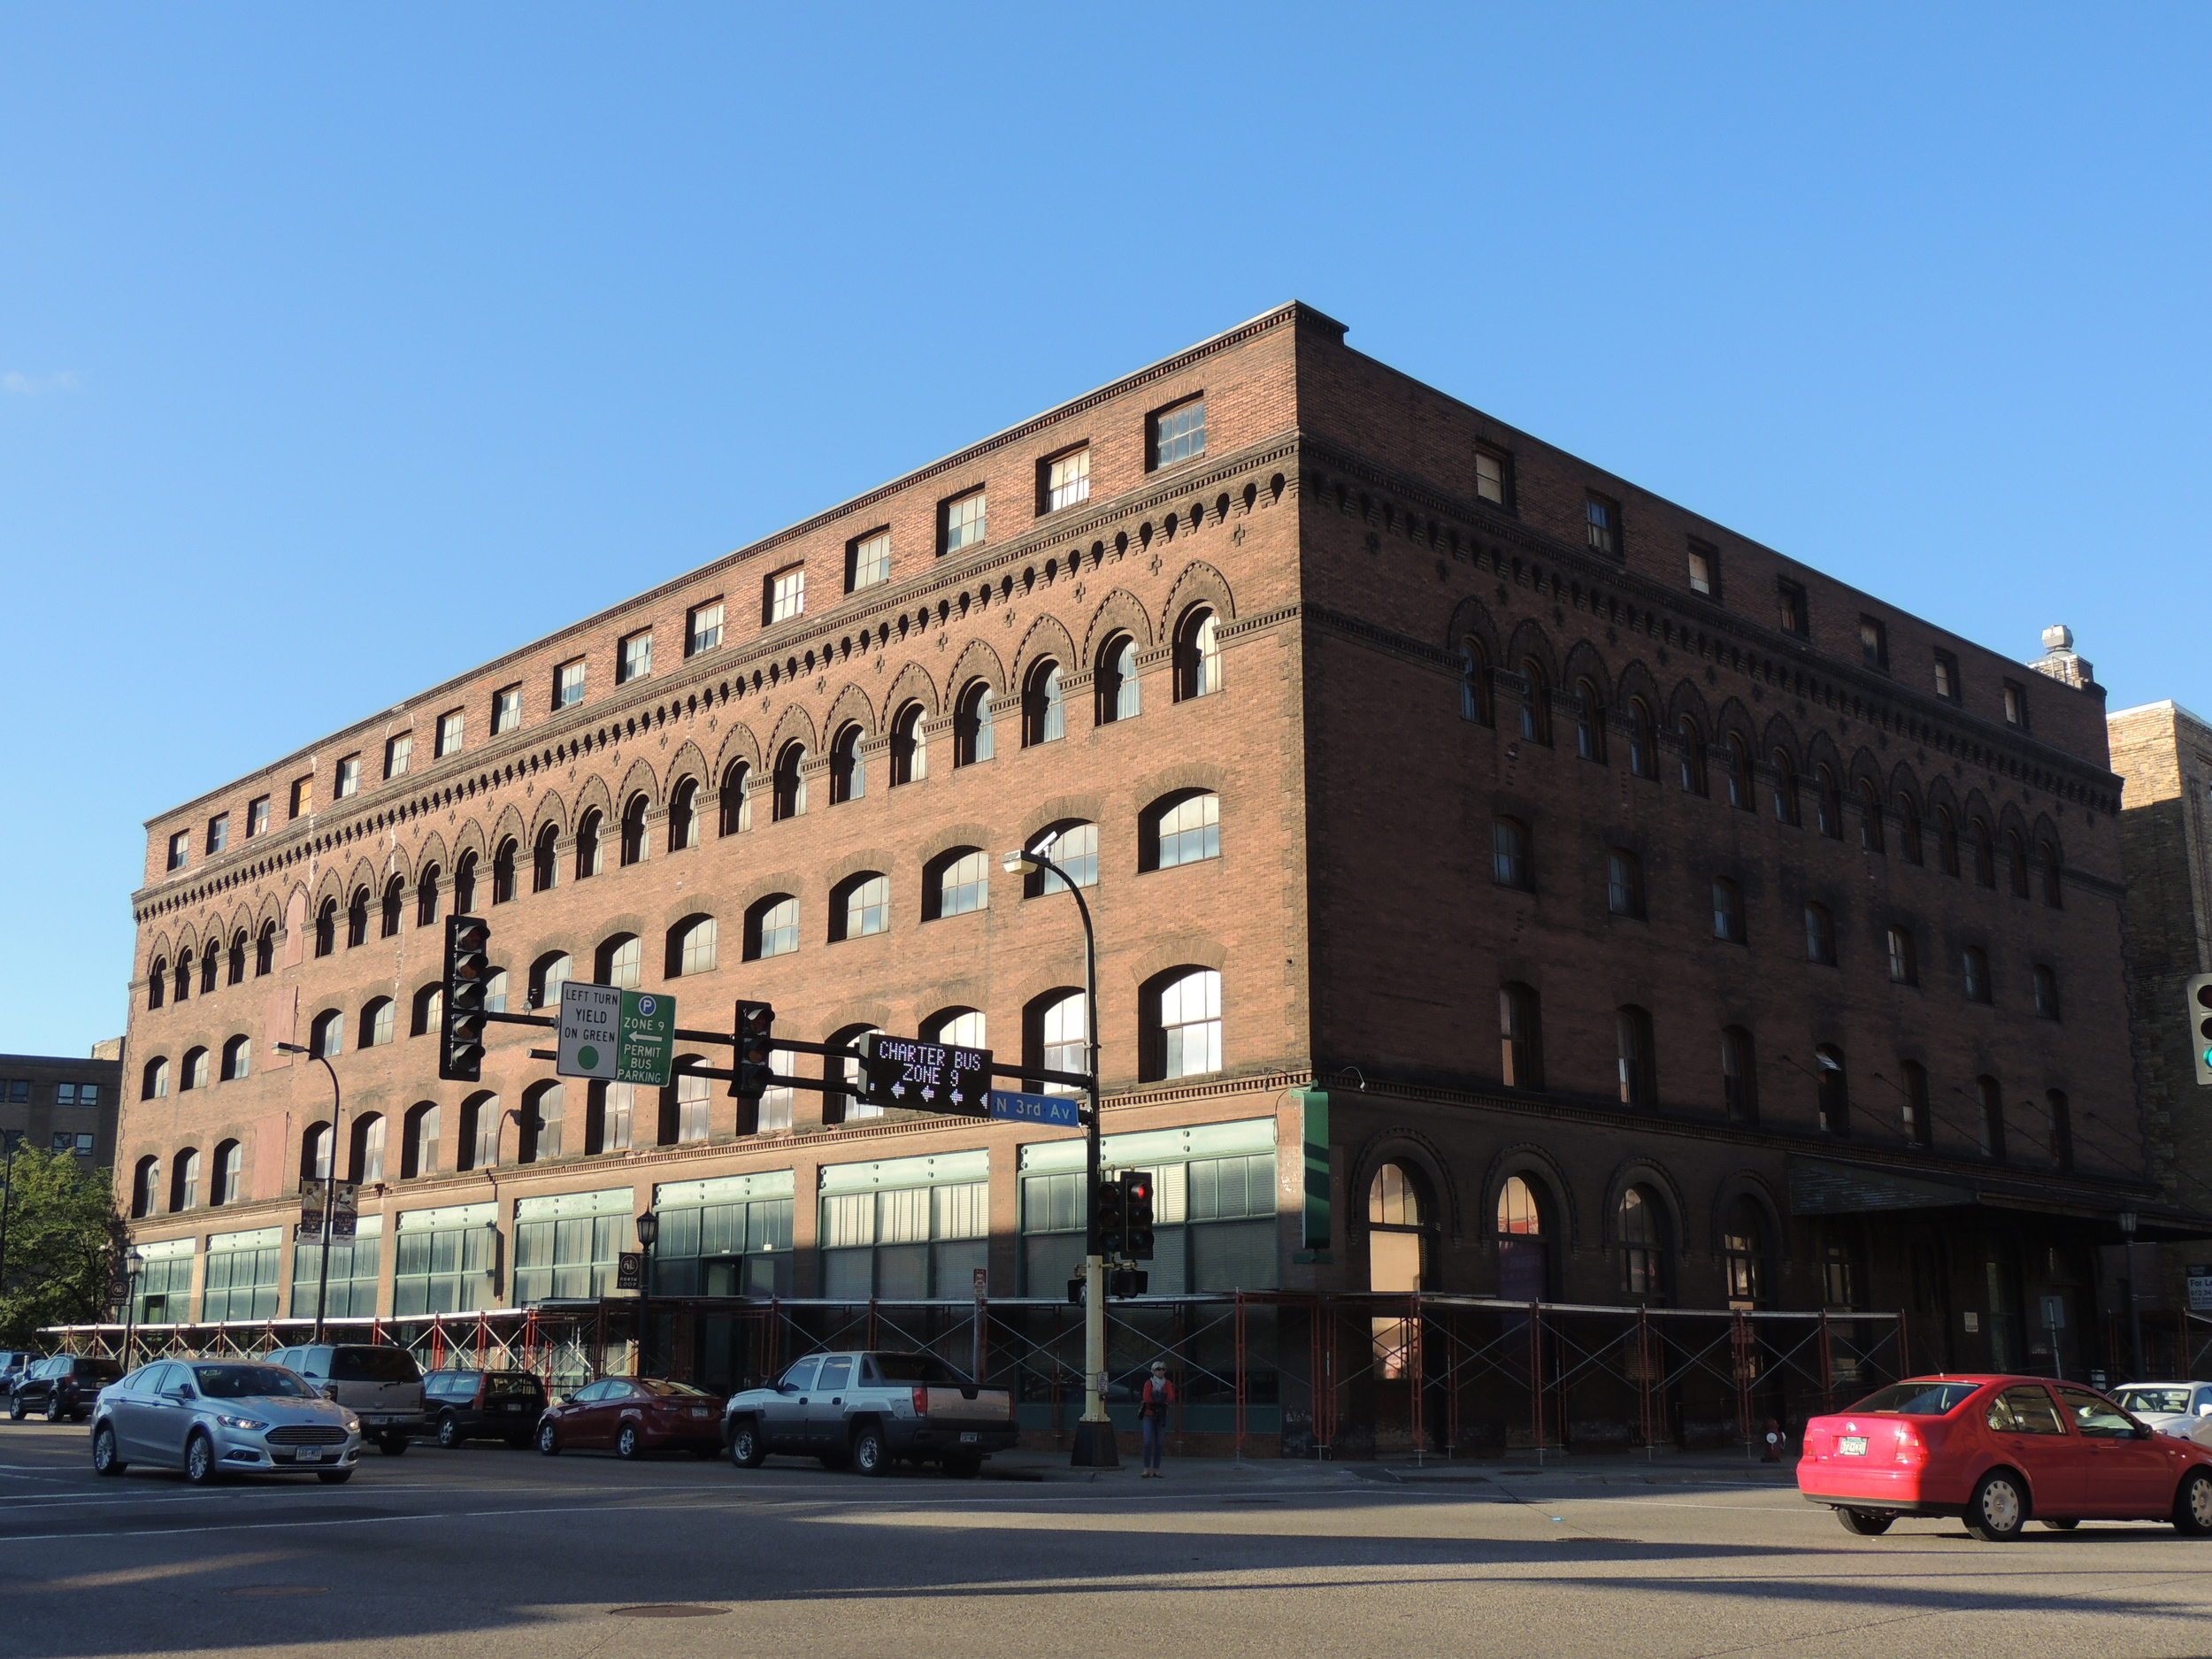 Above:  Aparium Hotel Groups hopes to turn the historic Jackson Building in a 120 room boutique hotel.